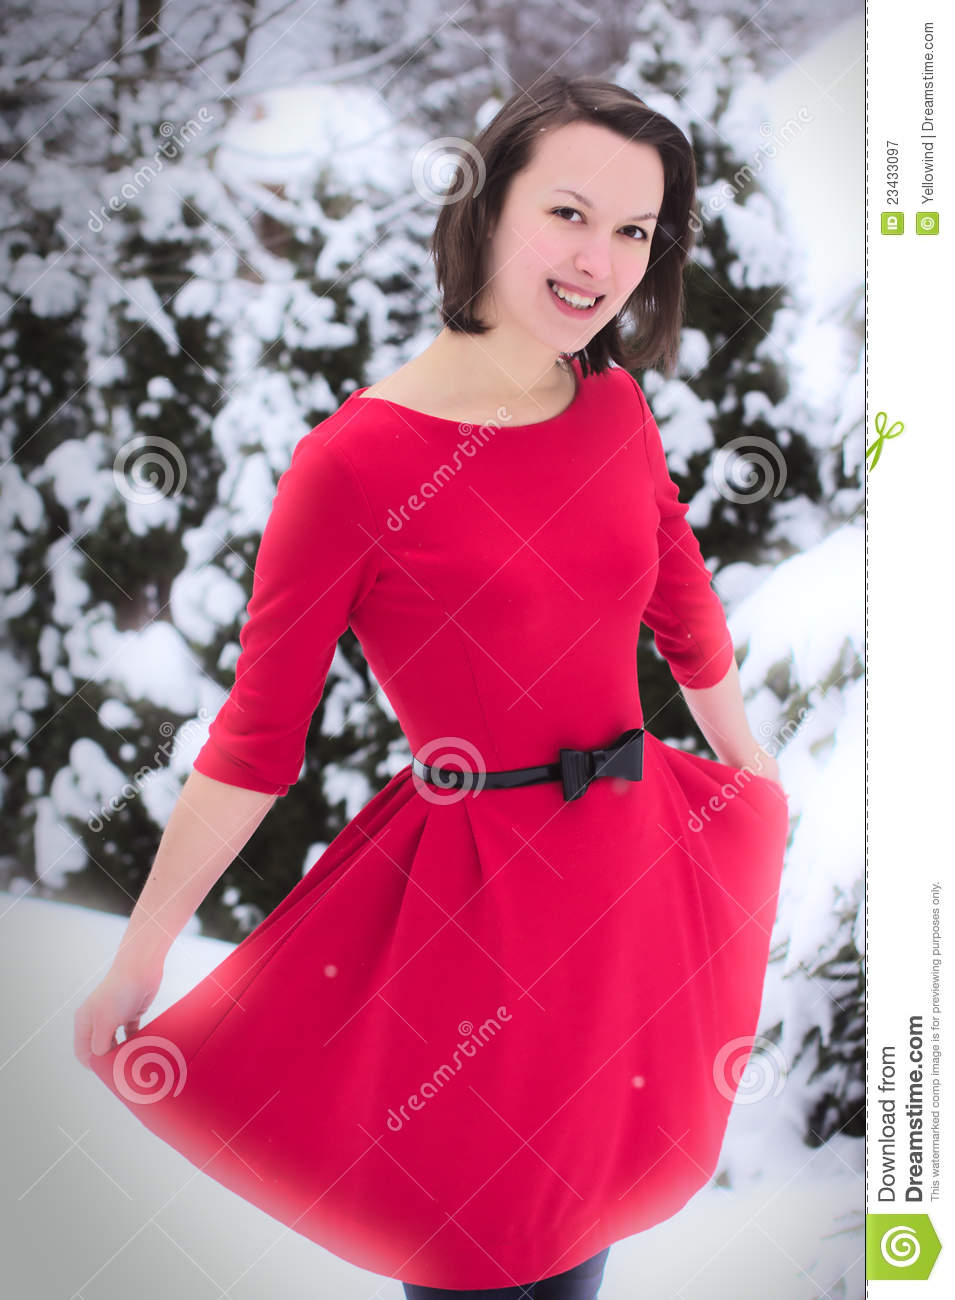 Pretty Woman In Winter With Red Dress Royalty Free Stock ...